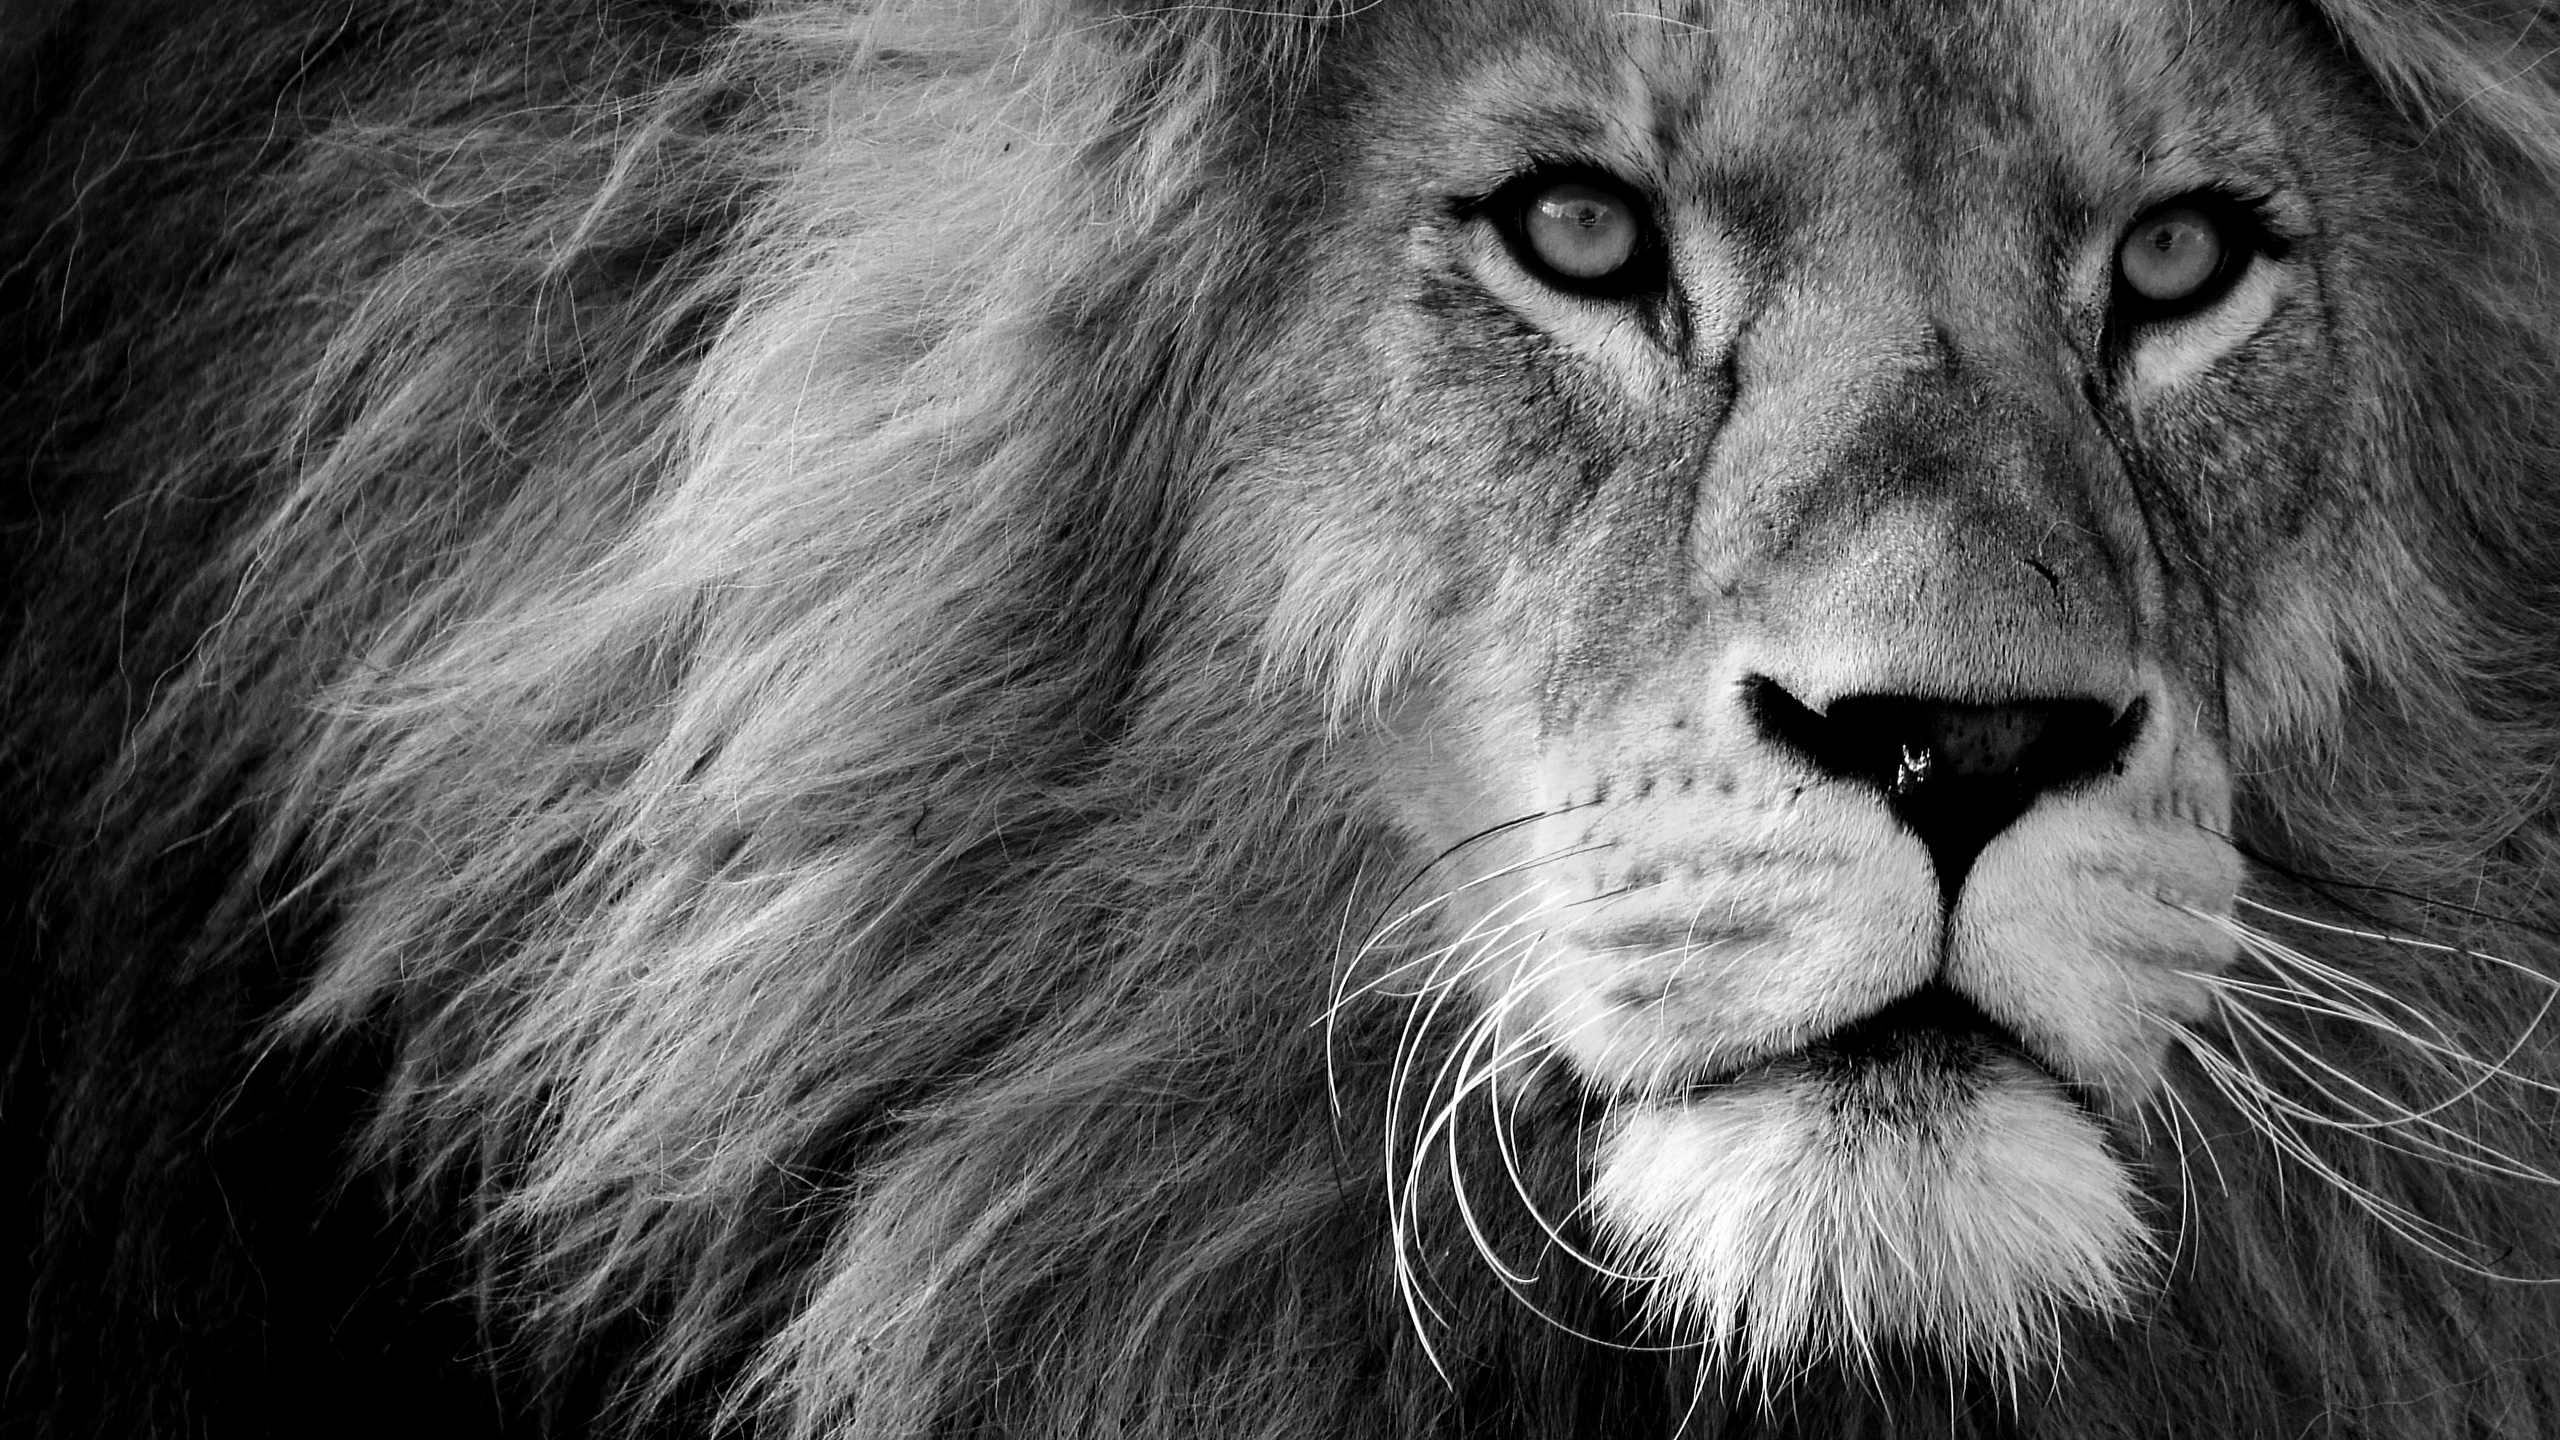 Picture Lions Snout Black And White Glance Animals 2560x1440